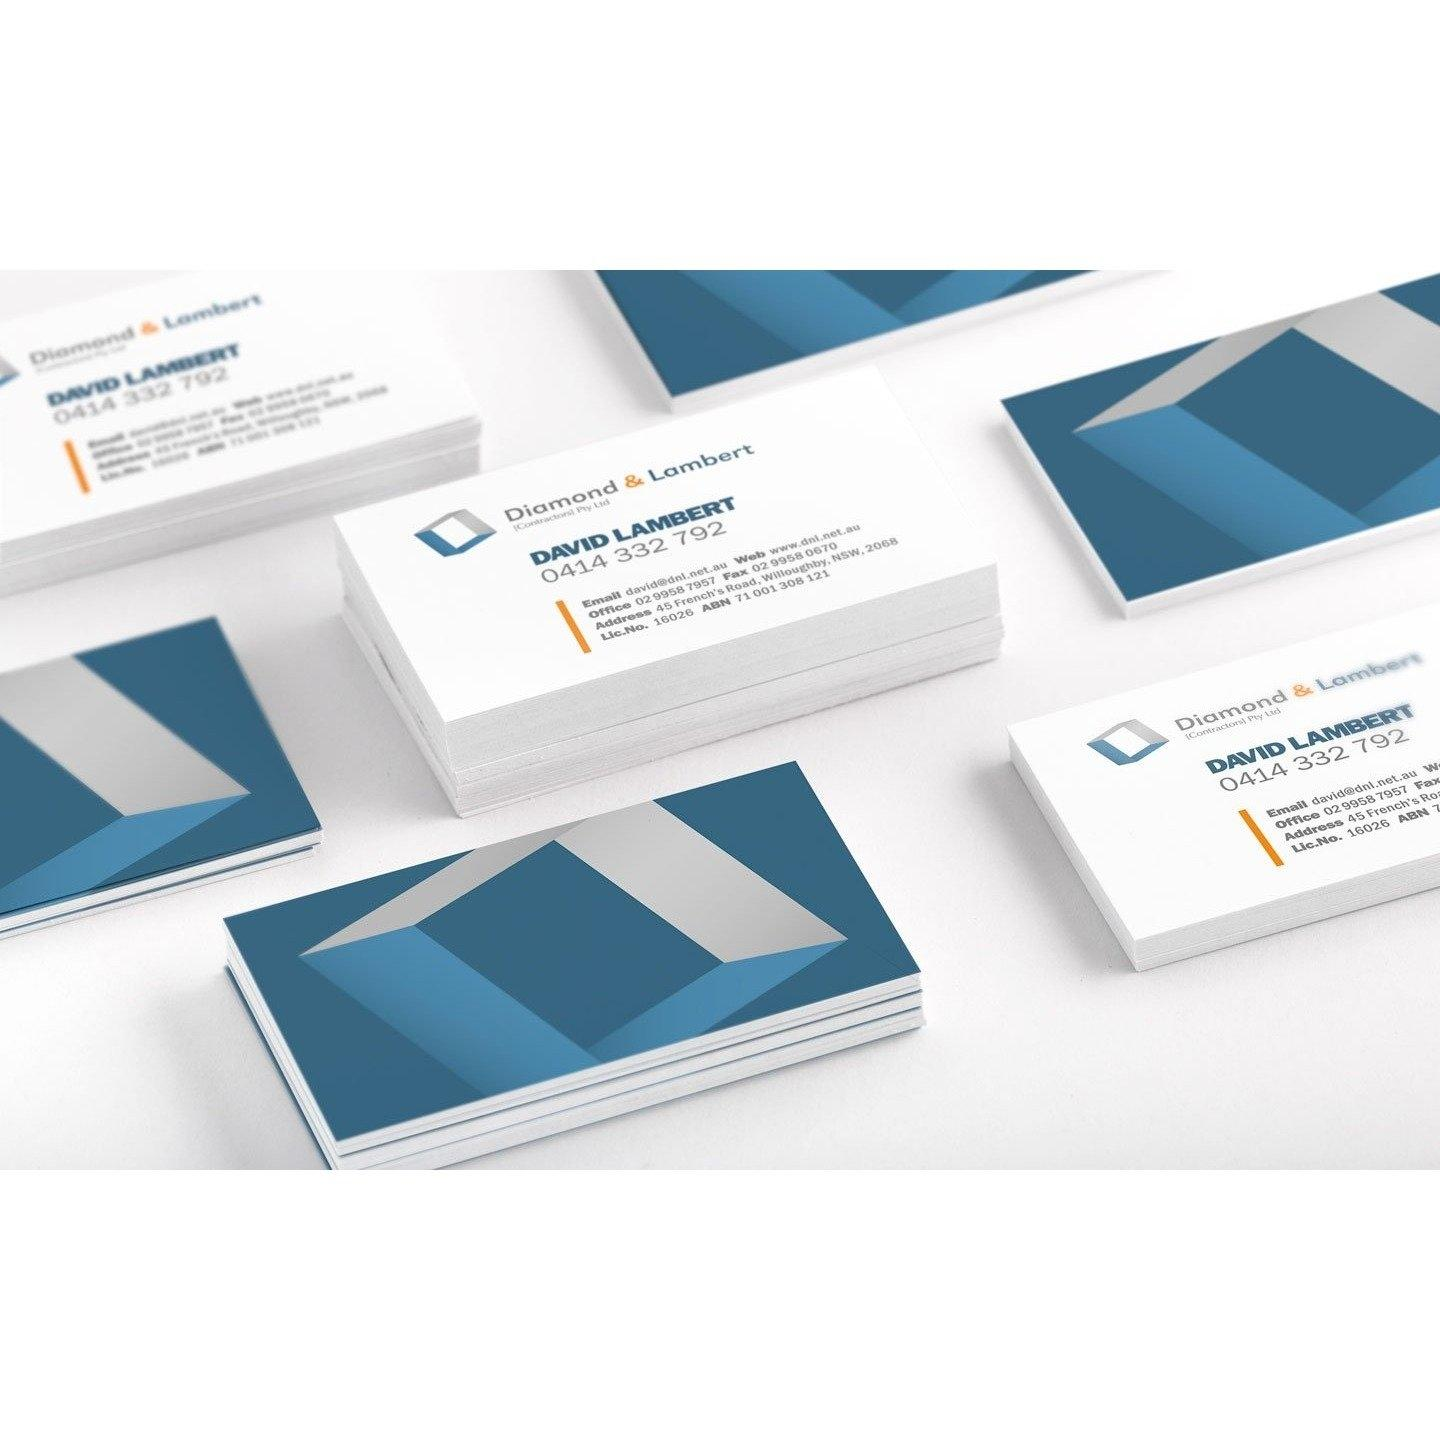 Standard business cards maxtor graphics online printing shop in standard business cards maxtor graphics the no 1 printing shop in batangas philippines reheart Choice Image